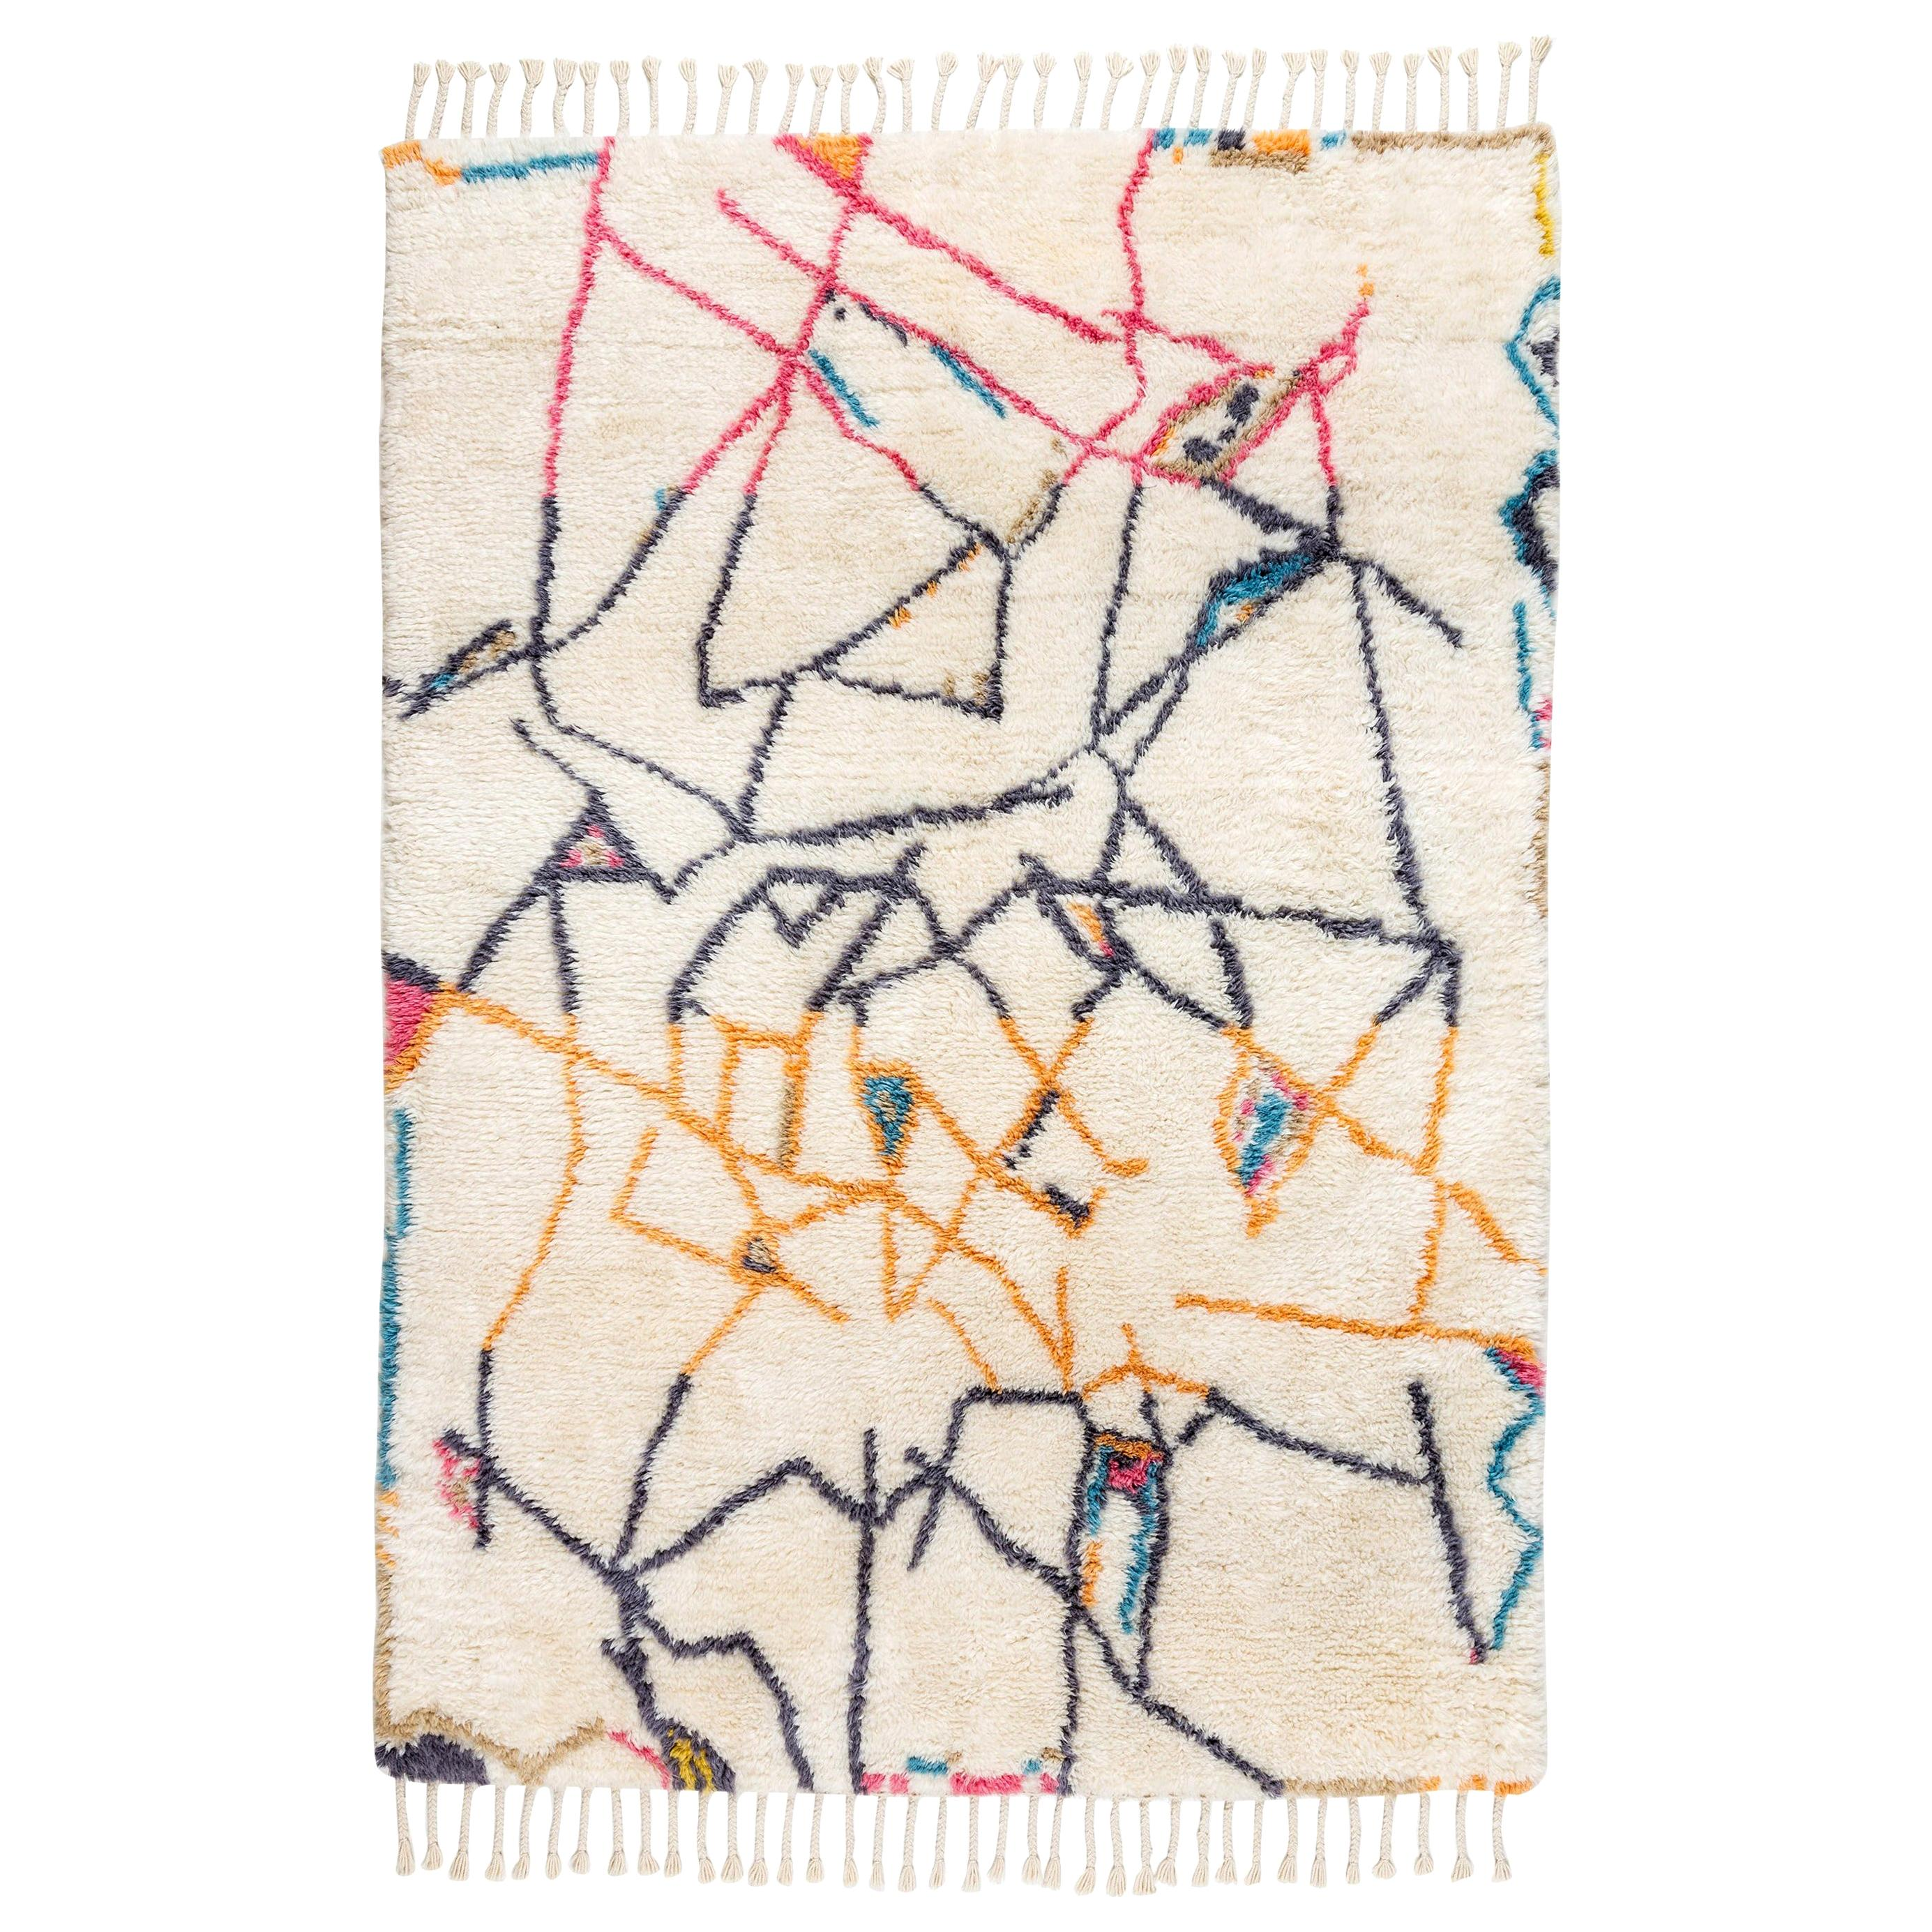 """Moroccan Inspired Knot Rug Limited Edition """"Positions"""" by Johanna Boccardo"""